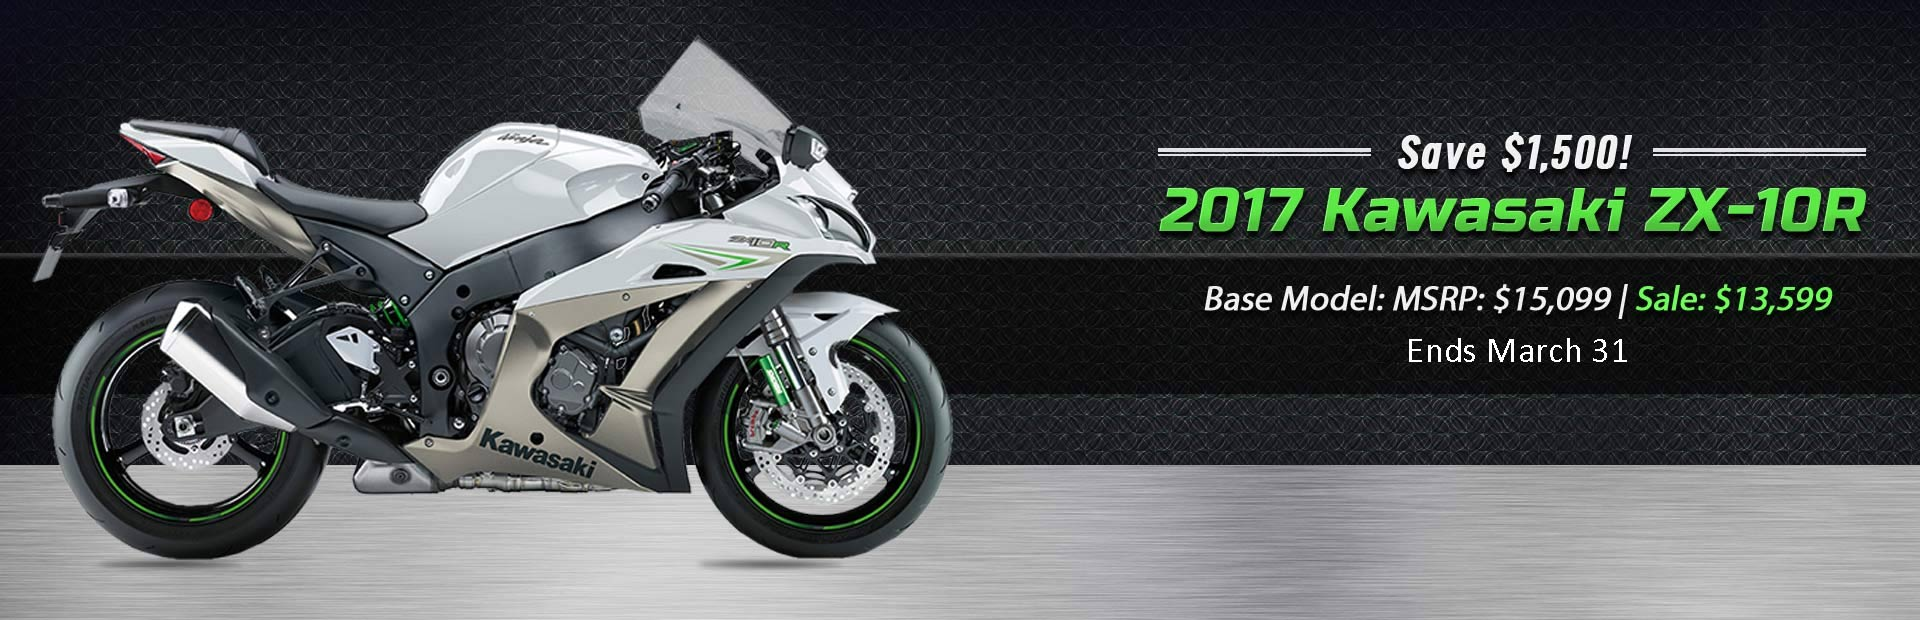 Save $1,500 on the 2017 Kawasaki ZX-10R!